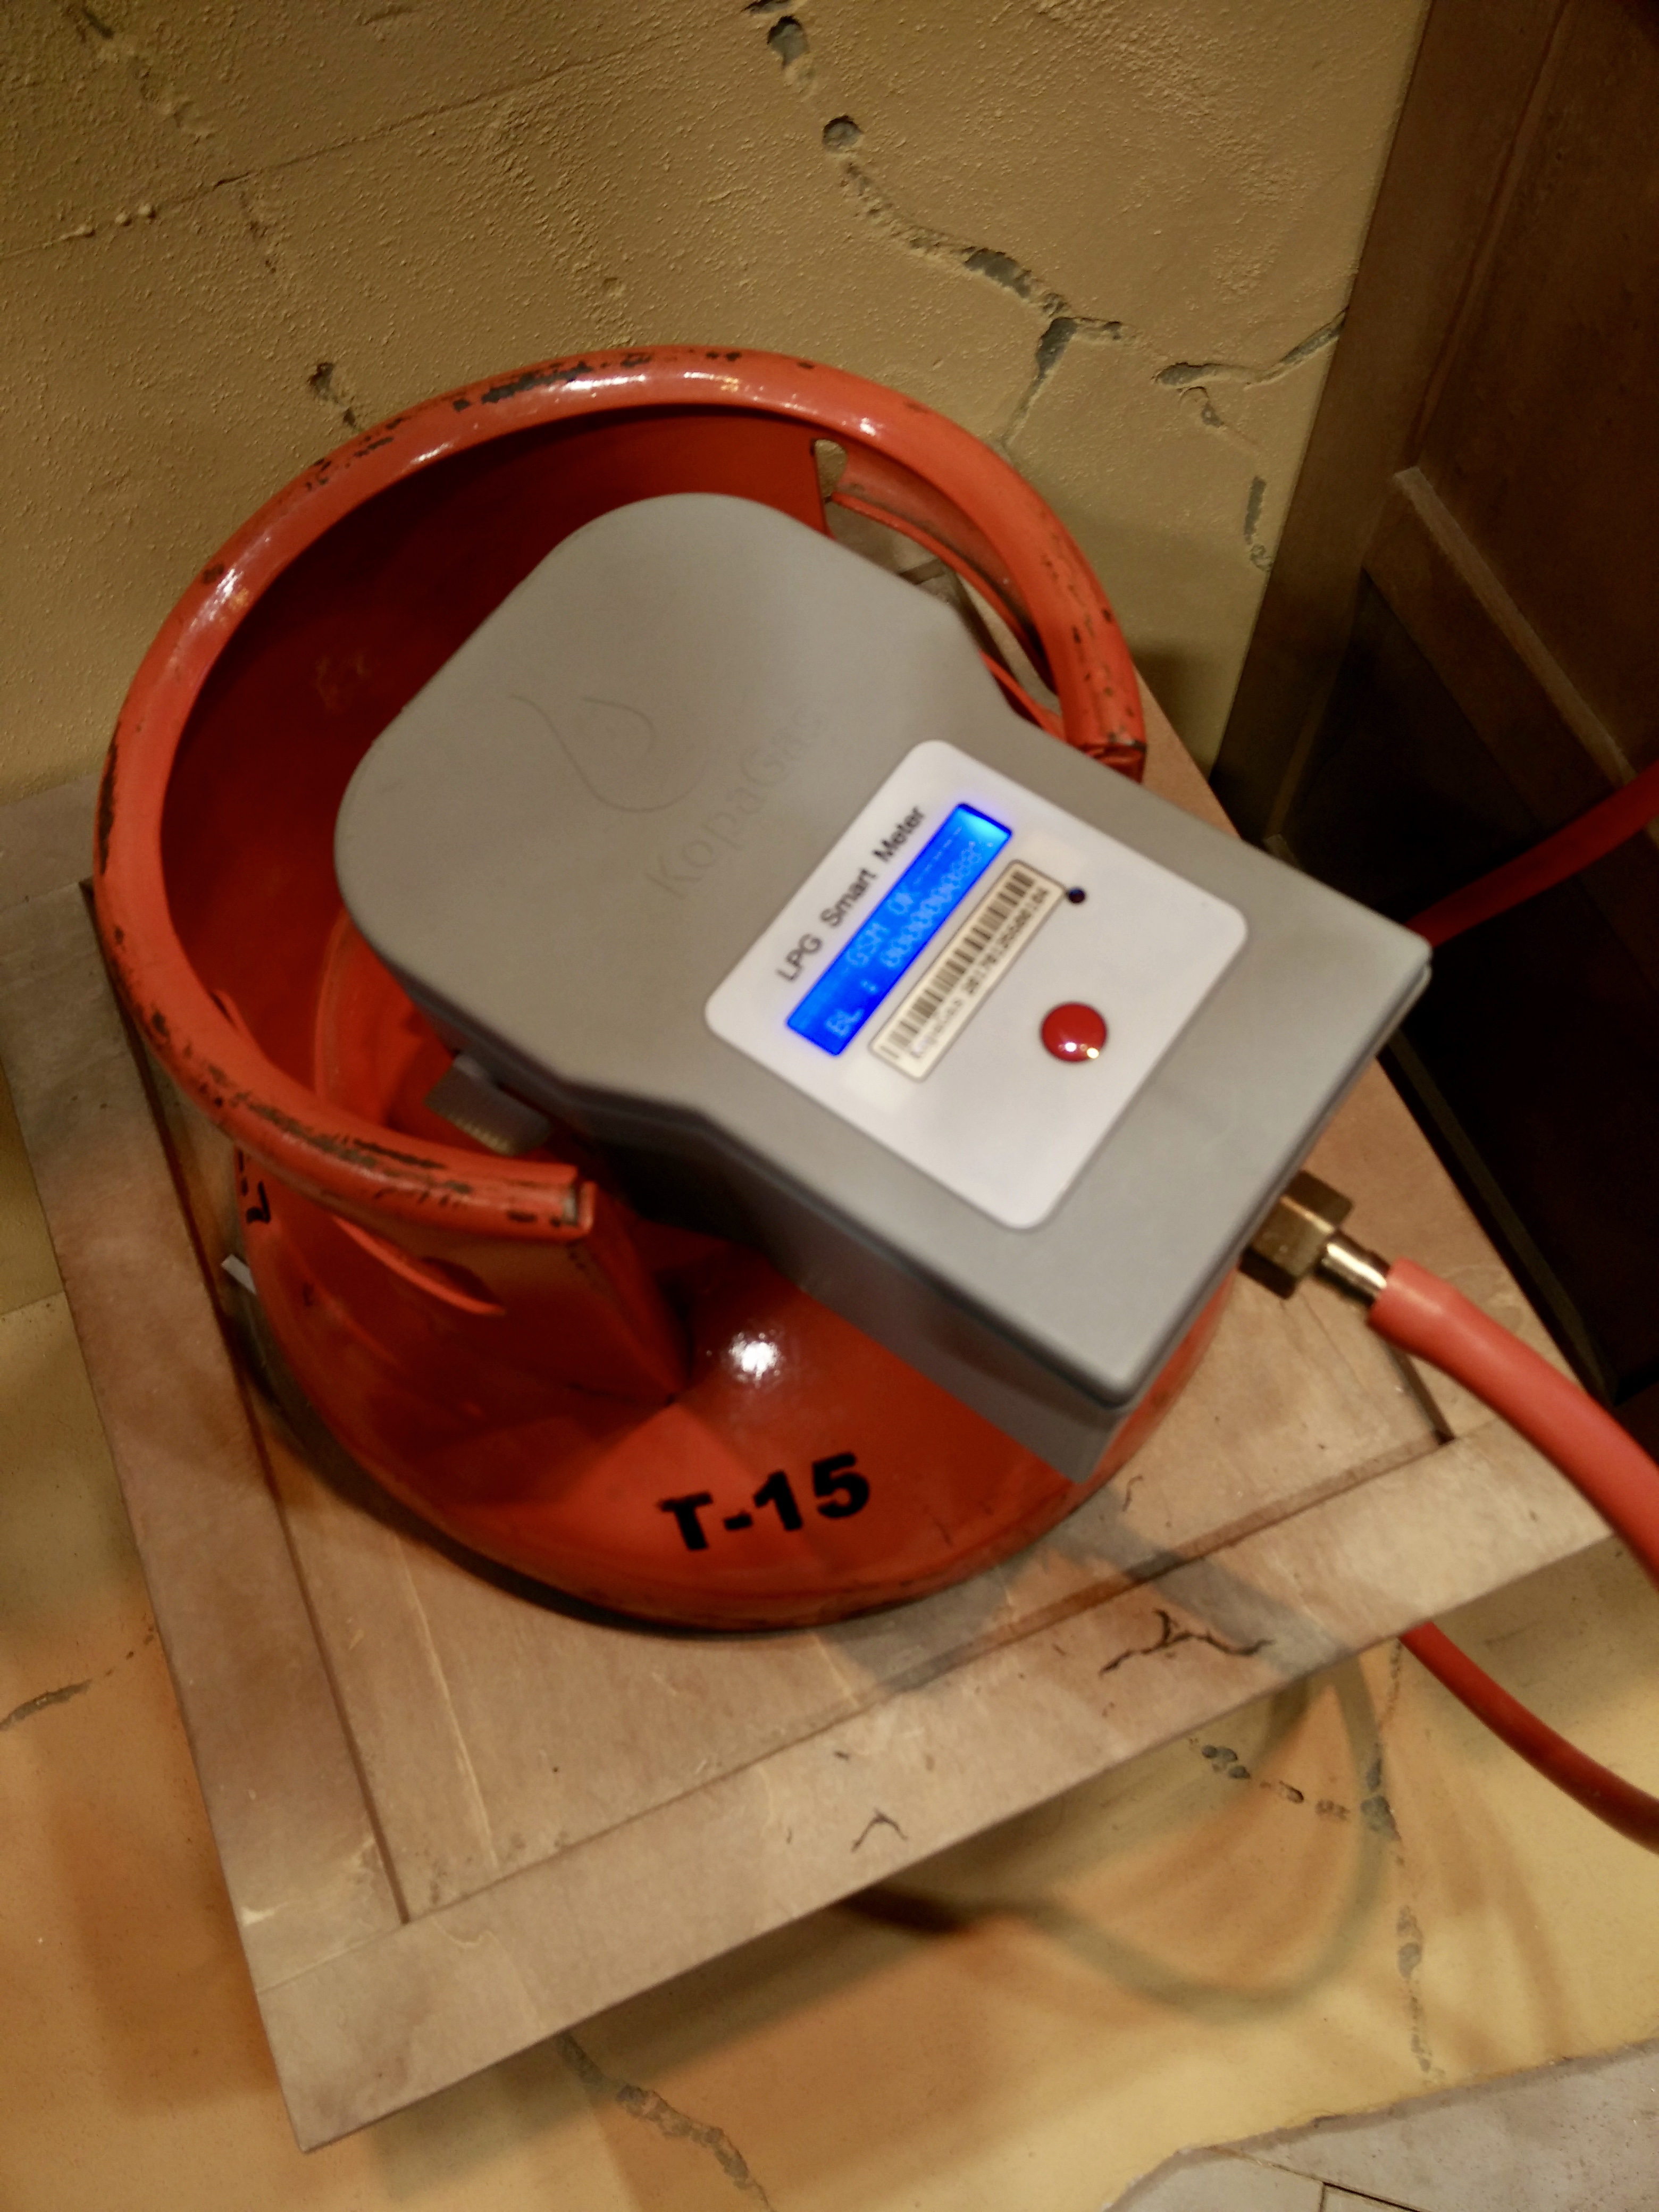 The KopaGas smart meter